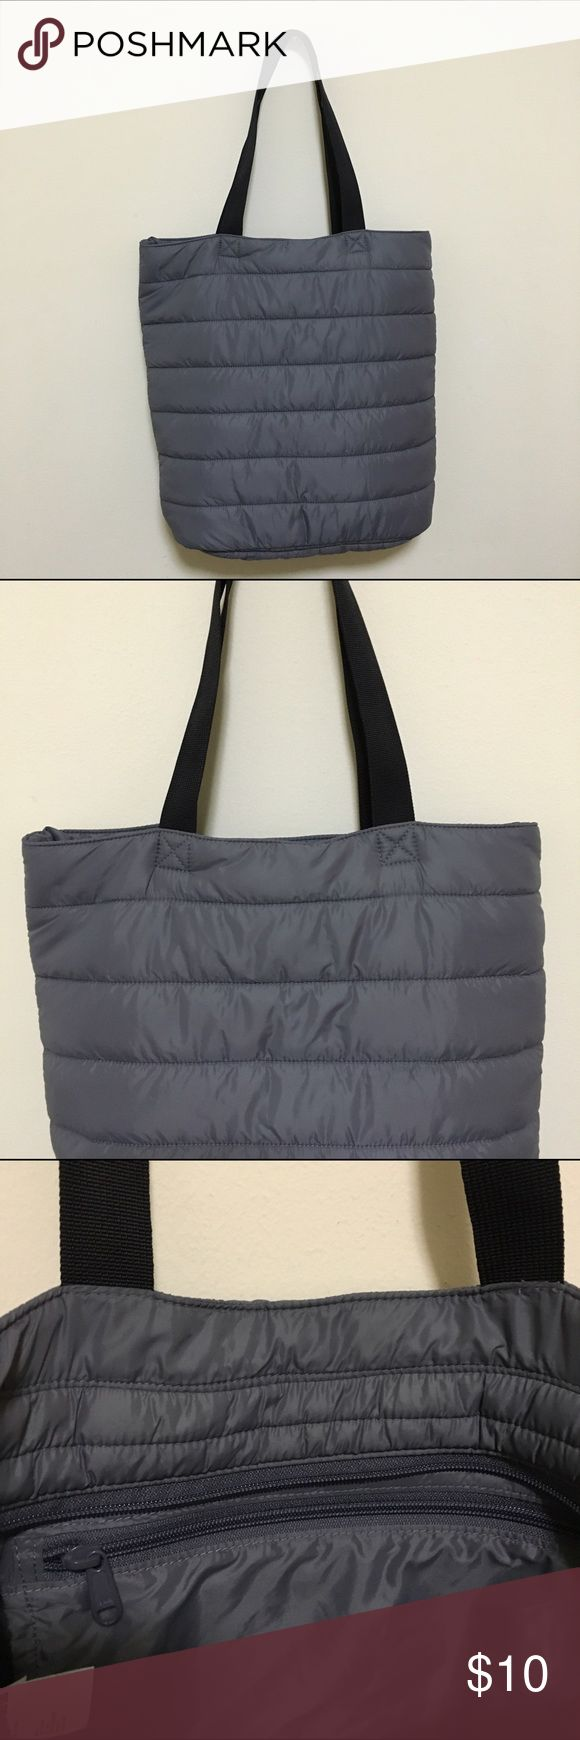 Uniqlo Tote Bag brand new condition • soft + very lightweight • extra pocket inside Uniqlo Bags Totes